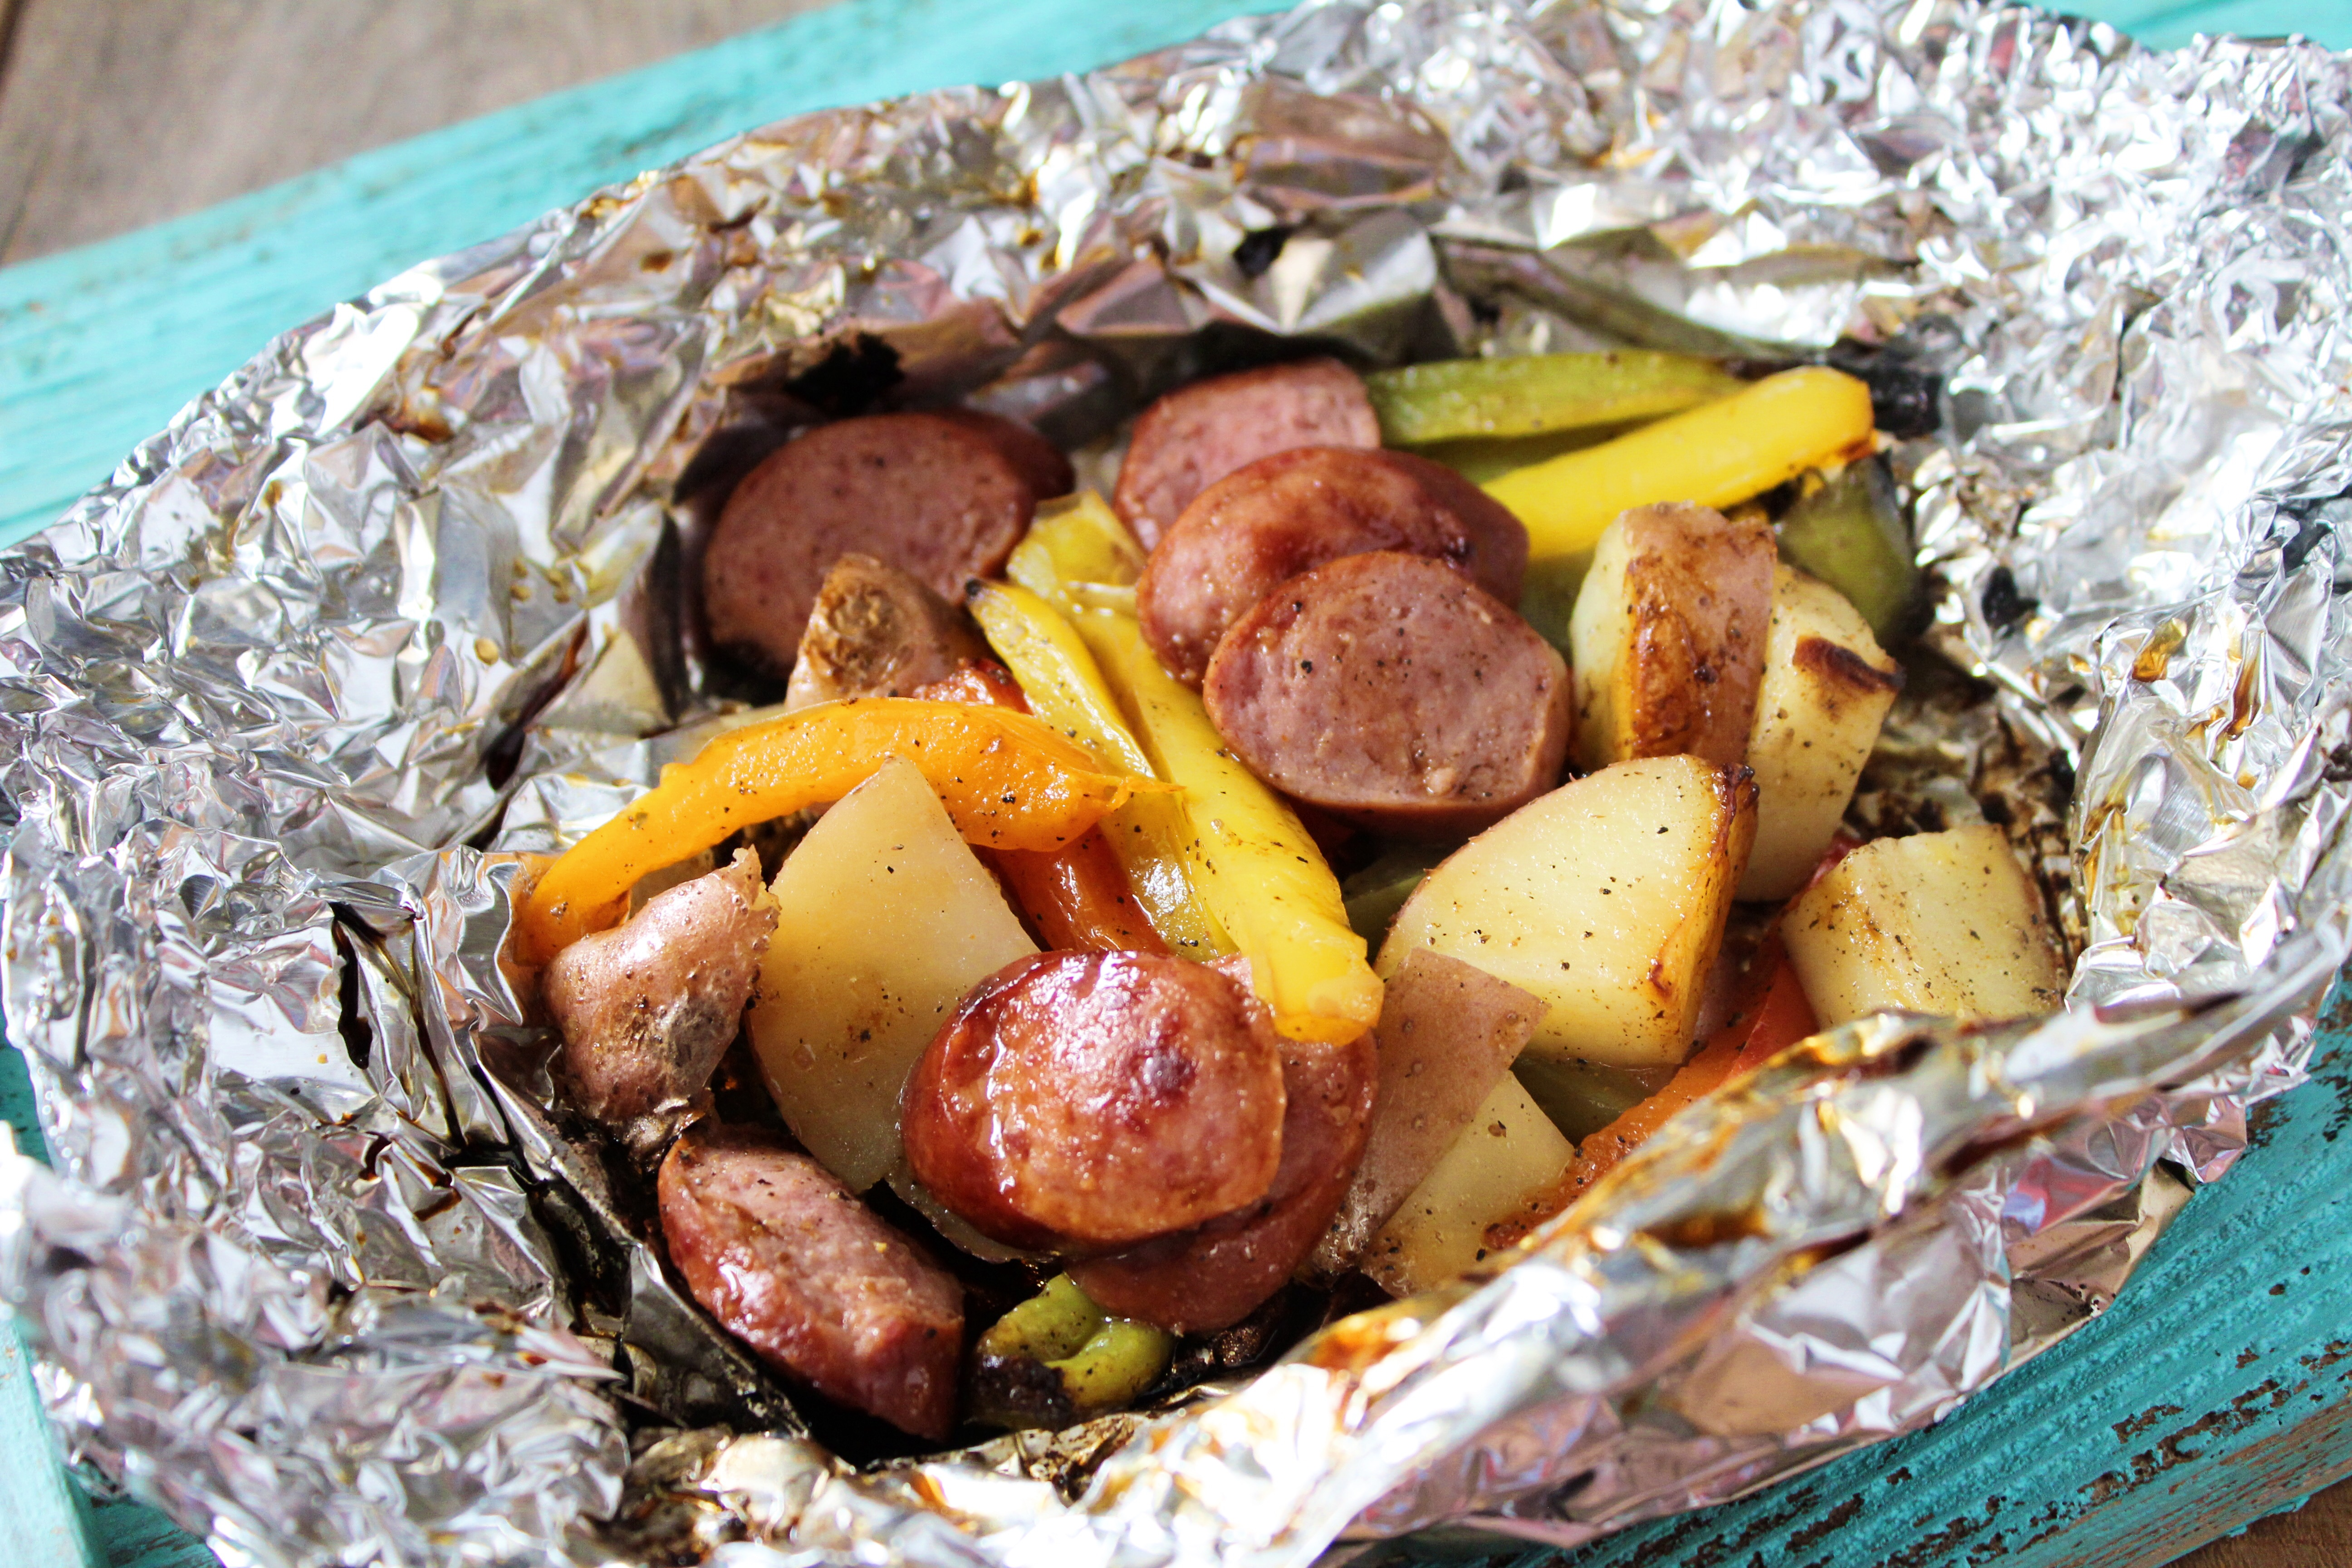 Grilled Sausage and Peppers in Tin Foil